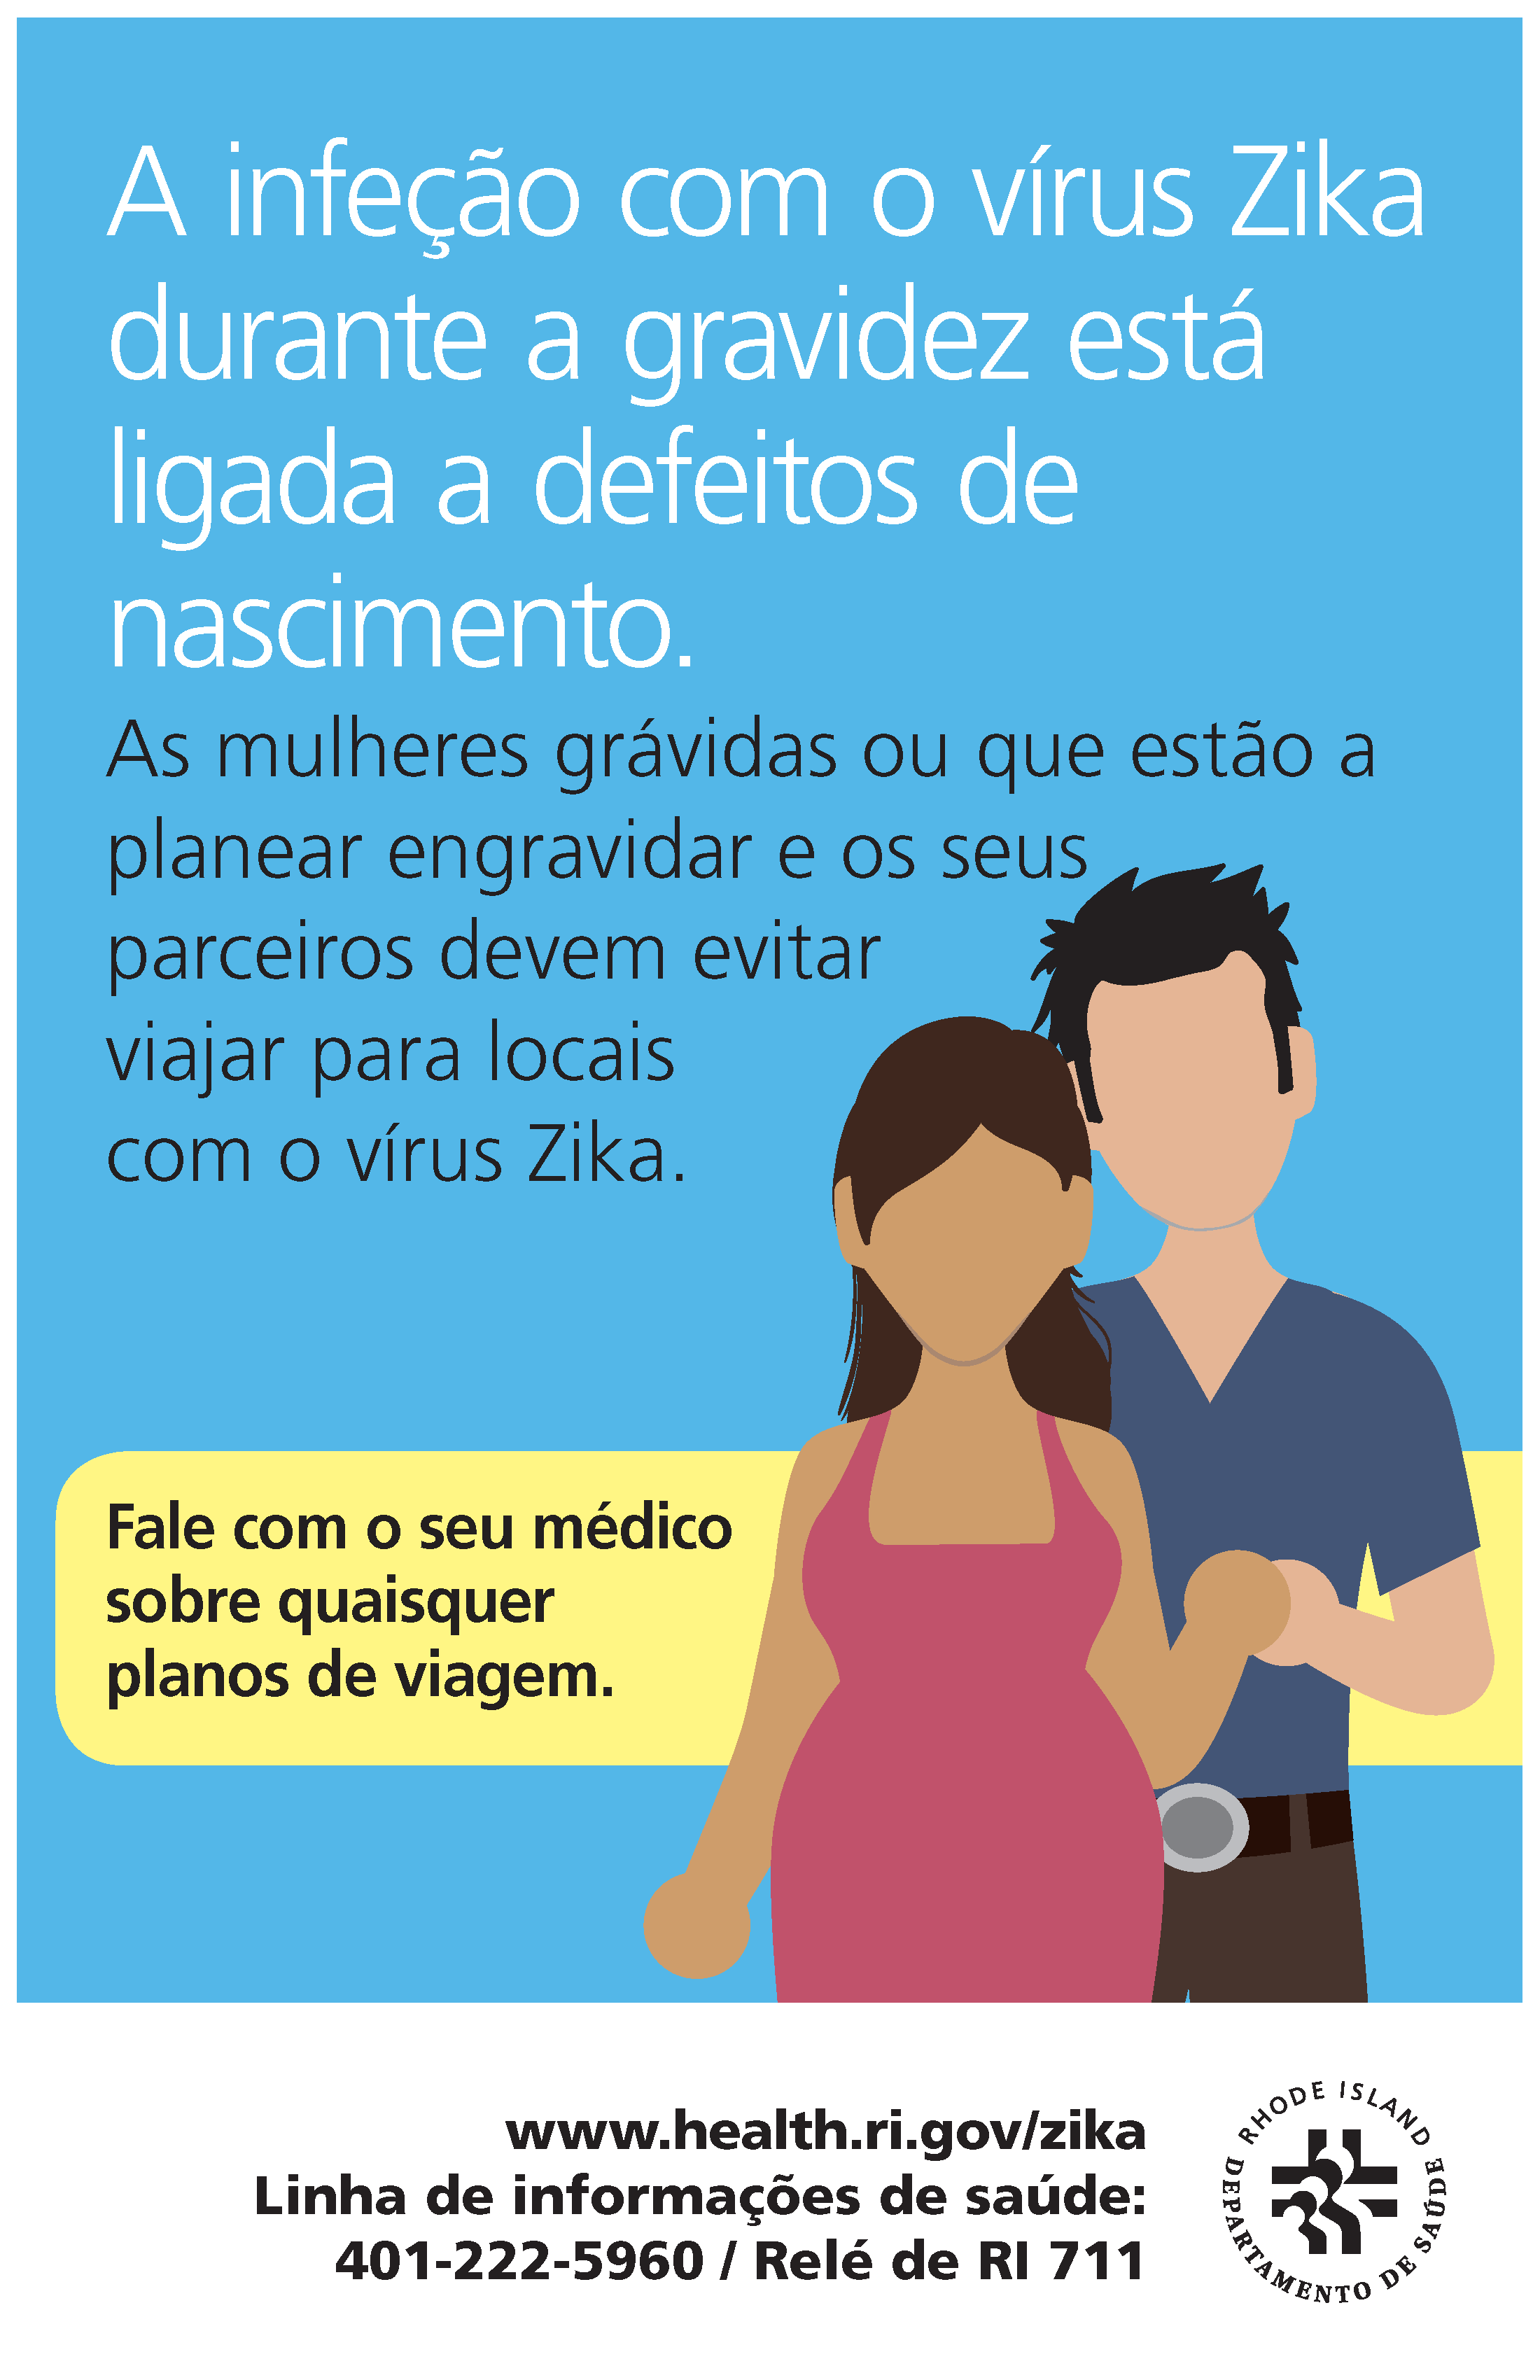 Infection With Zika Virus During Pregnancy Is Linked To Birth Defects (Portuguese)